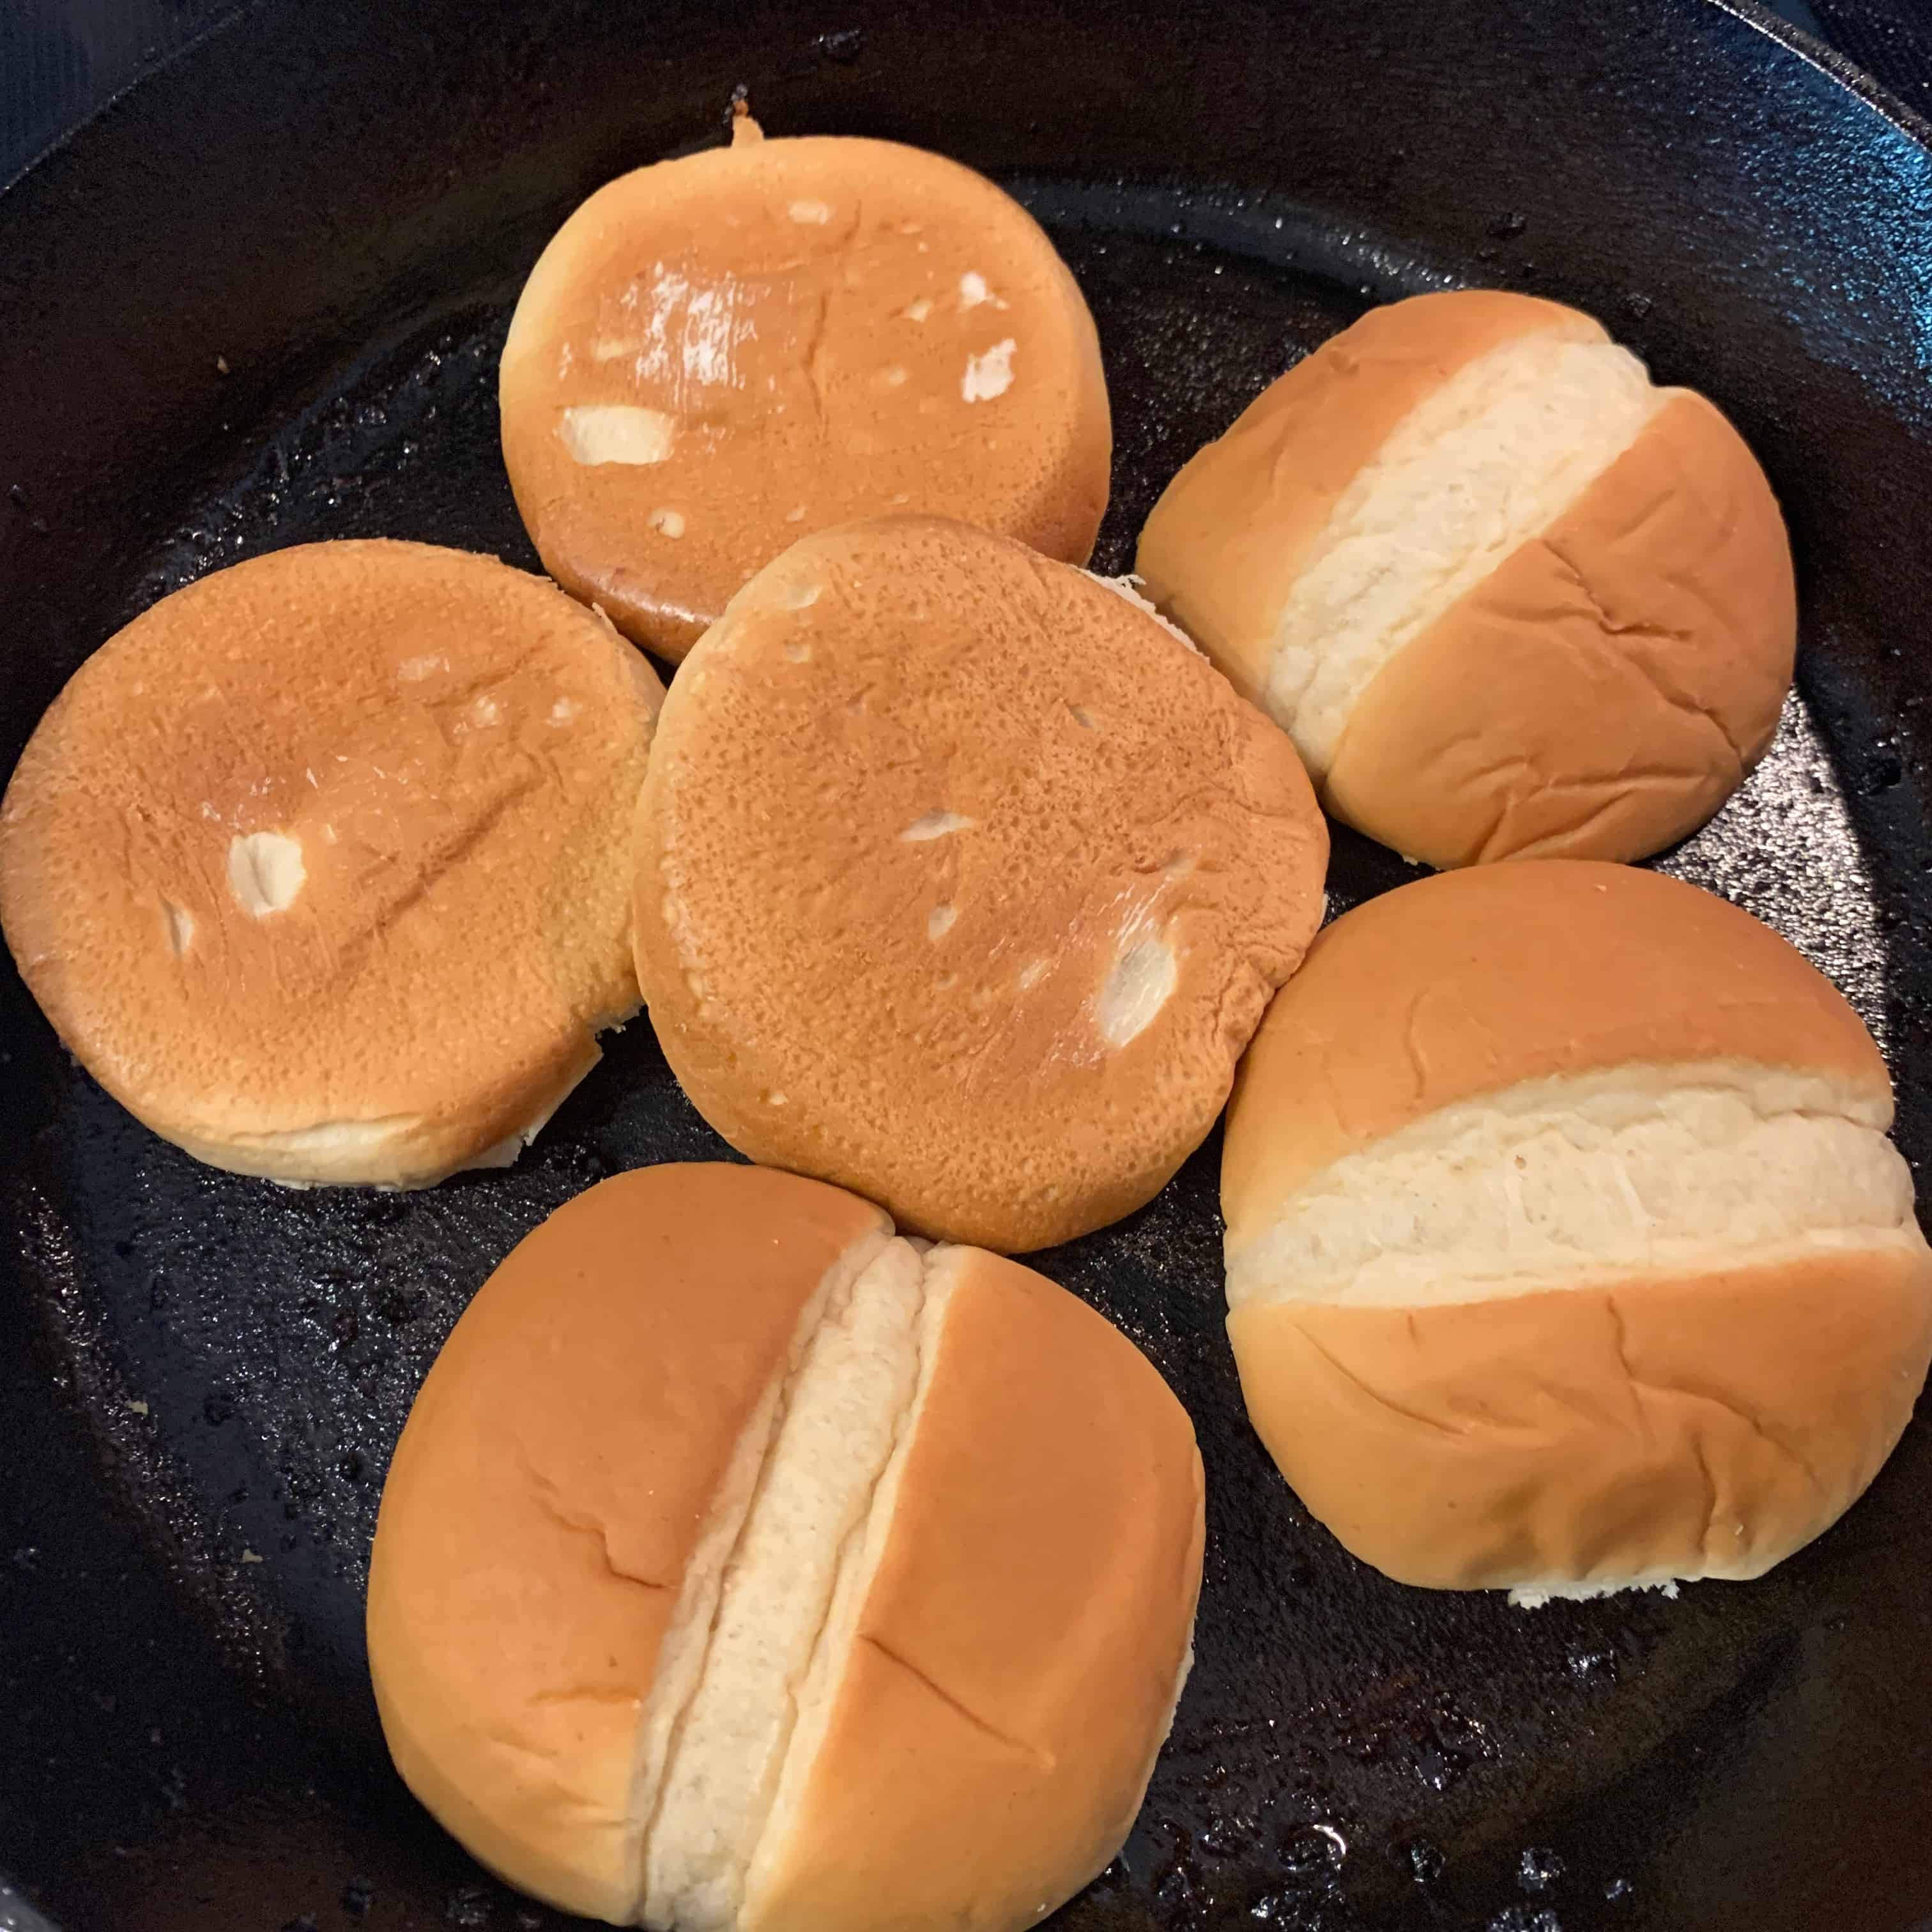 buns toasting in the skillet after cooking the chicken burgers